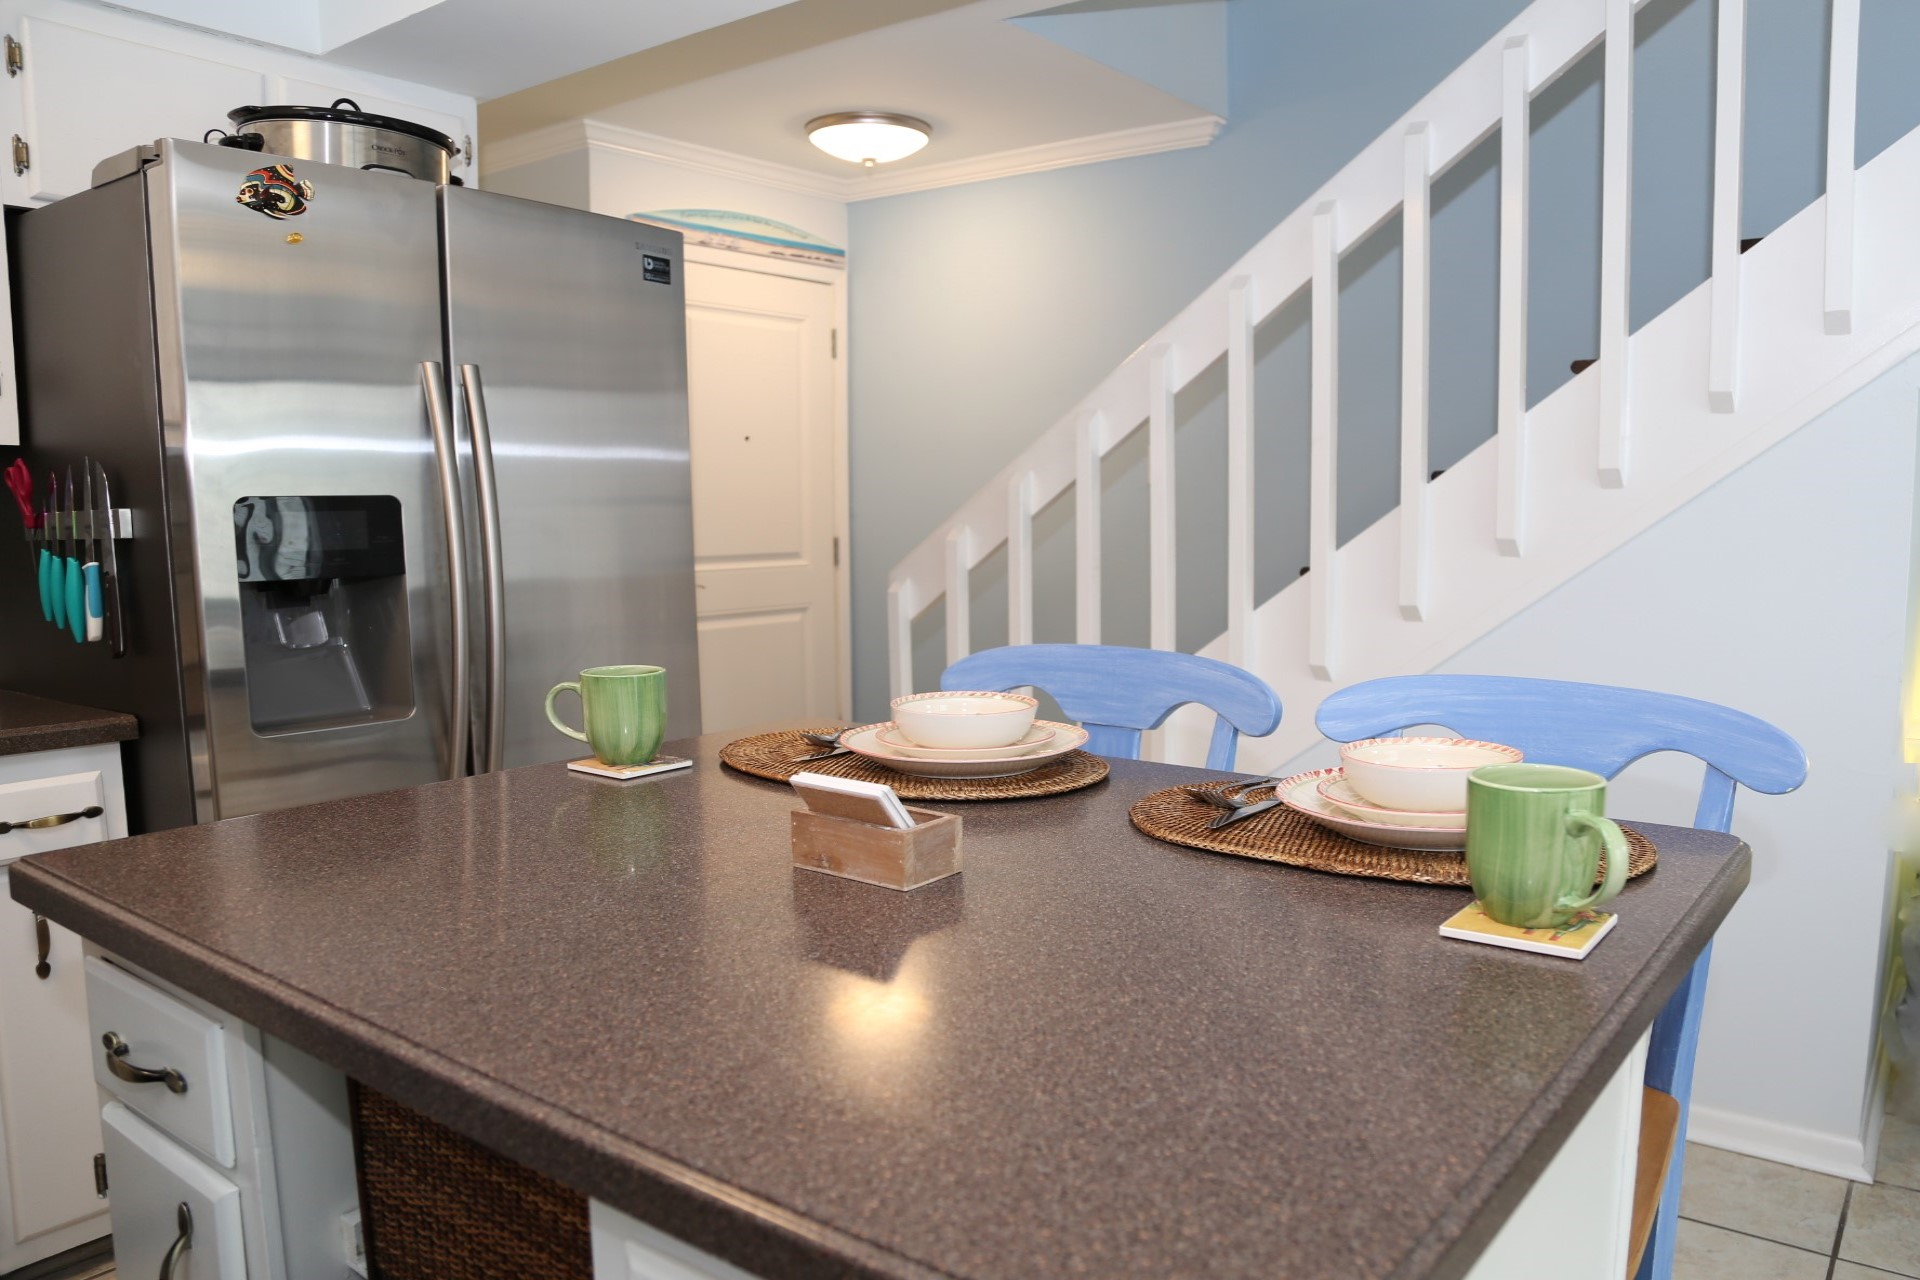 The kitchen island offers extra counter space for prepping m